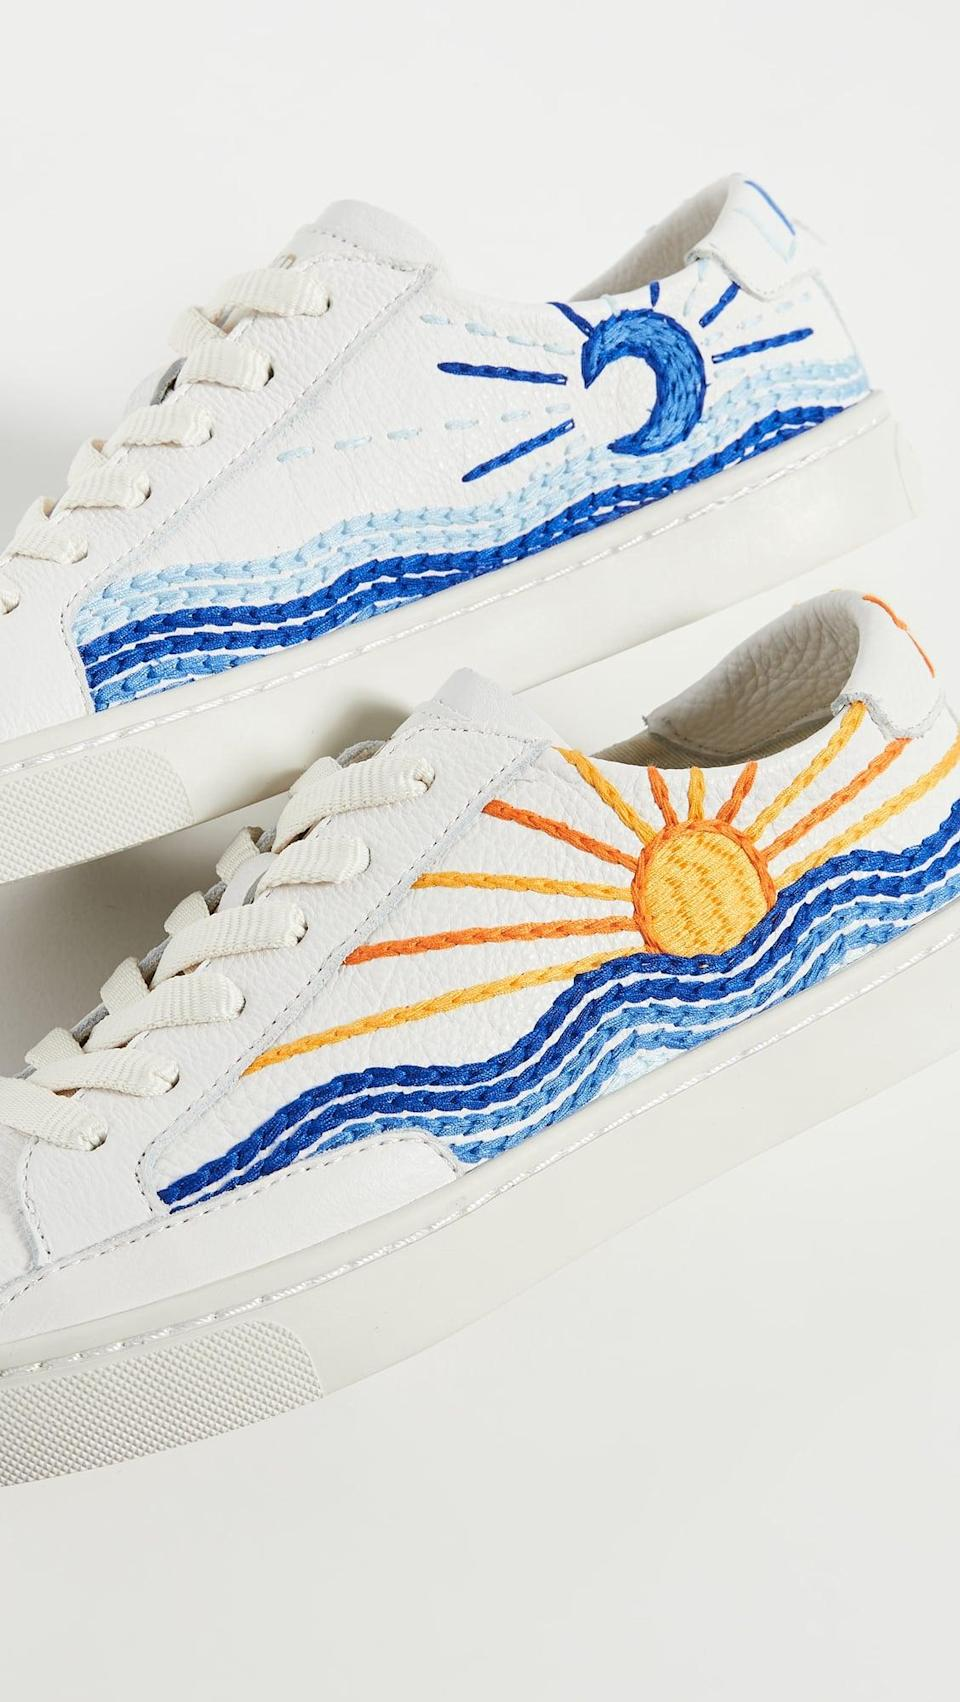 "<p>The embroidery on these <a href=""https://www.popsugar.com/buy/Soludos-Sunrise-Sunset-Sneakers-584515?p_name=Soludos%20Sunrise%20Sunset%20Sneakers&retailer=shopbop.com&pid=584515&price=139&evar1=fab%3Aus&evar9=47571677&evar98=https%3A%2F%2Fwww.popsugar.com%2Ffashion%2Fphoto-gallery%2F47571677%2Fimage%2F47571944%2FSoludos-Sunrise-Sunset-Sneakers&list1=shopping%2Cshoes%2Csneakers%2Csummer%2Csummer%20fashion%2Cfashion%20shopping&prop13=mobile&pdata=1"" rel=""nofollow noopener"" class=""link rapid-noclick-resp"" target=""_blank"" data-ylk=""slk:Soludos Sunrise Sunset Sneakers"">Soludos Sunrise Sunset Sneakers</a> ($139) is incredible.</p>"